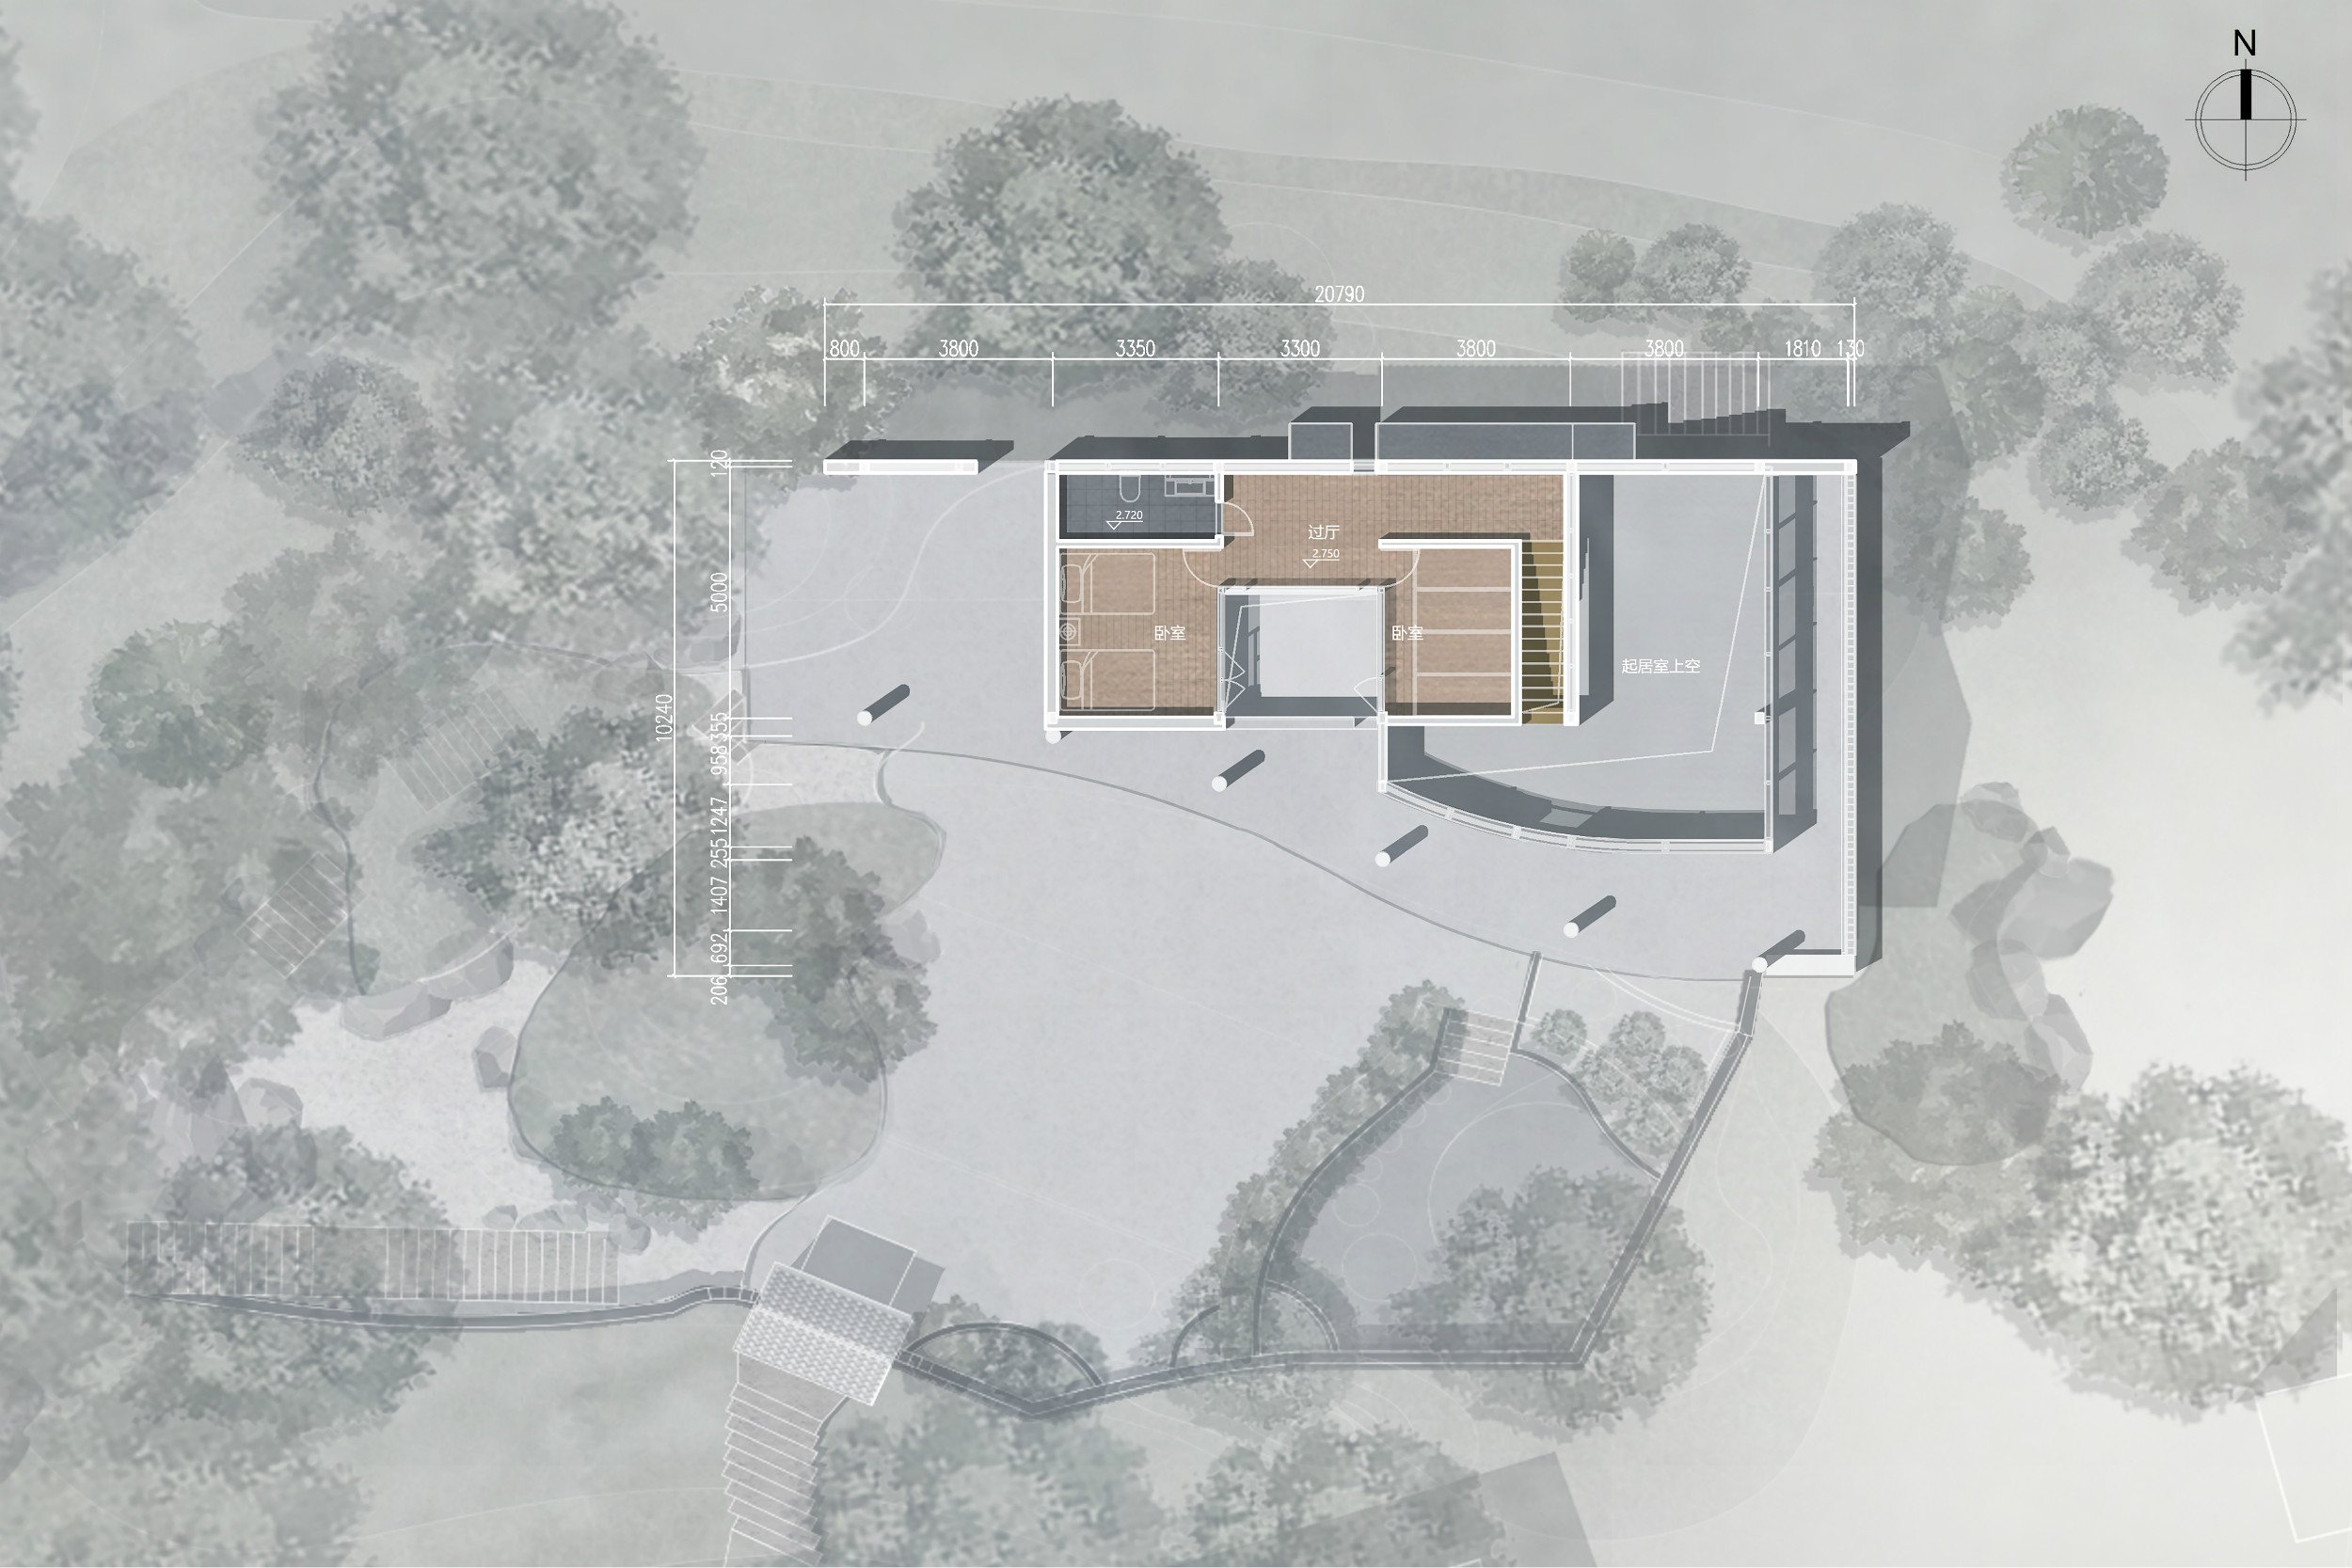 Second Floor Layout RSAA/Büro Ziyu Zhuang}